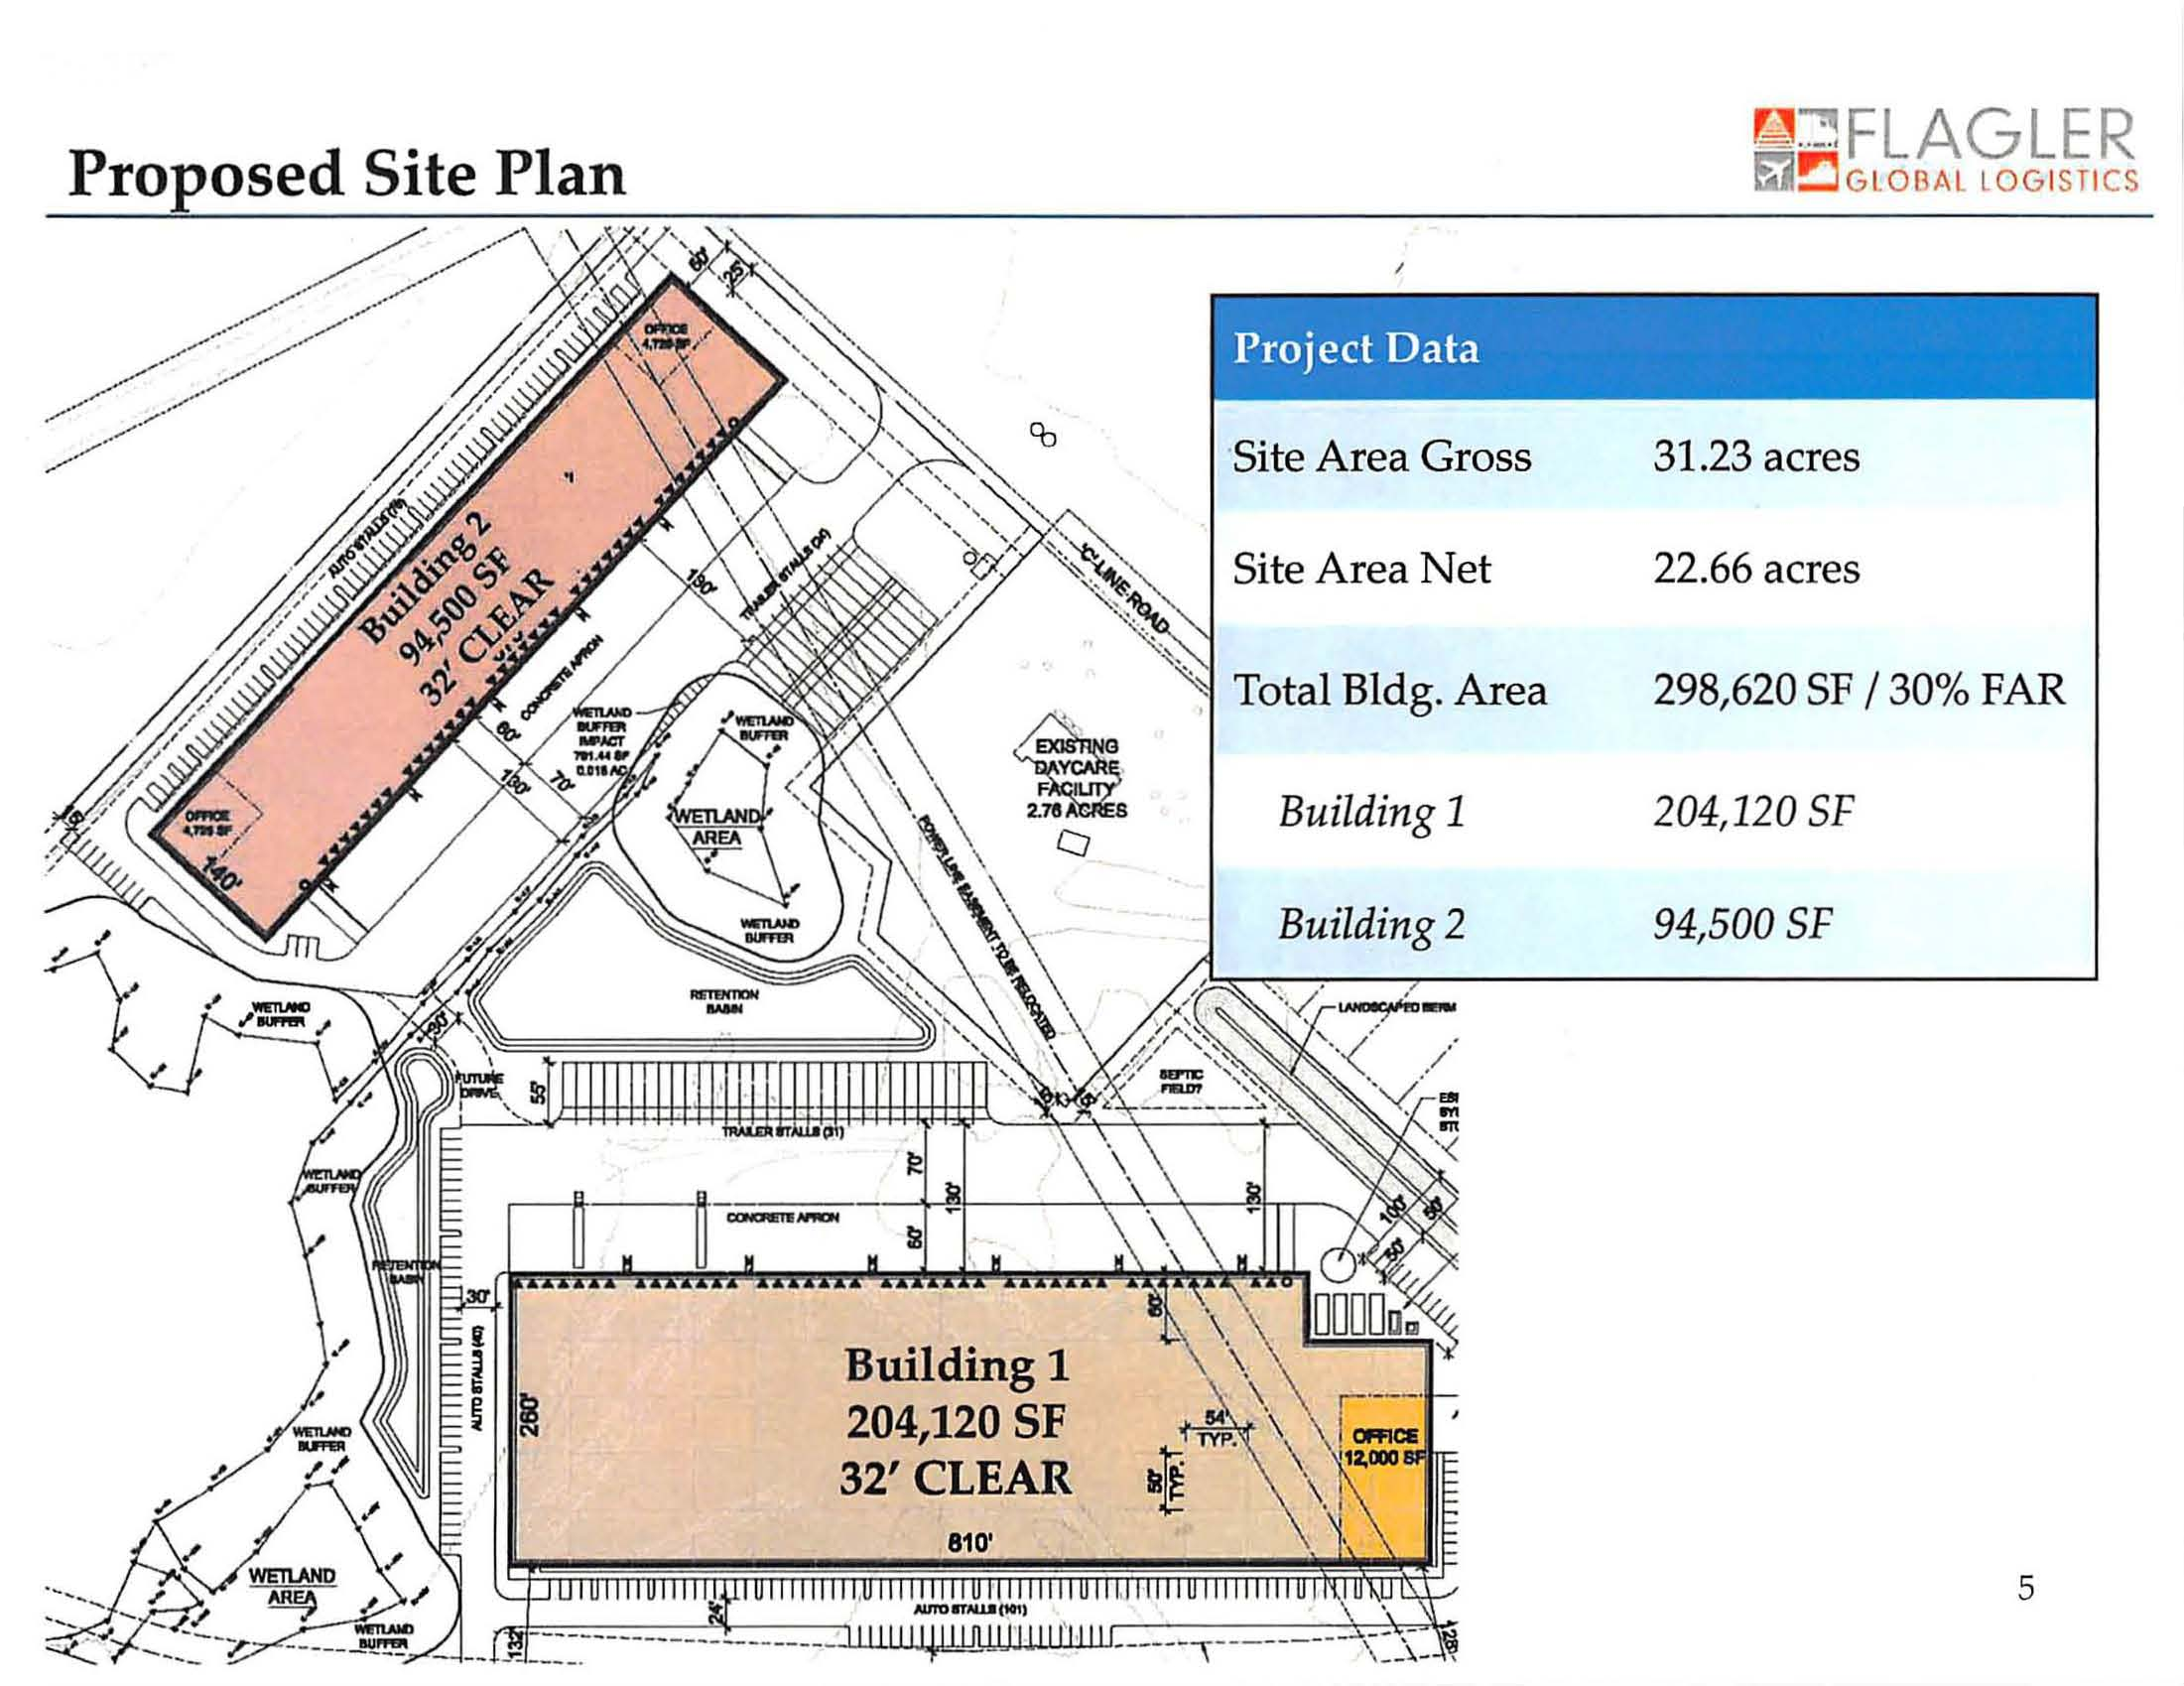 Fagler Phase 1 Proposed Site Plan